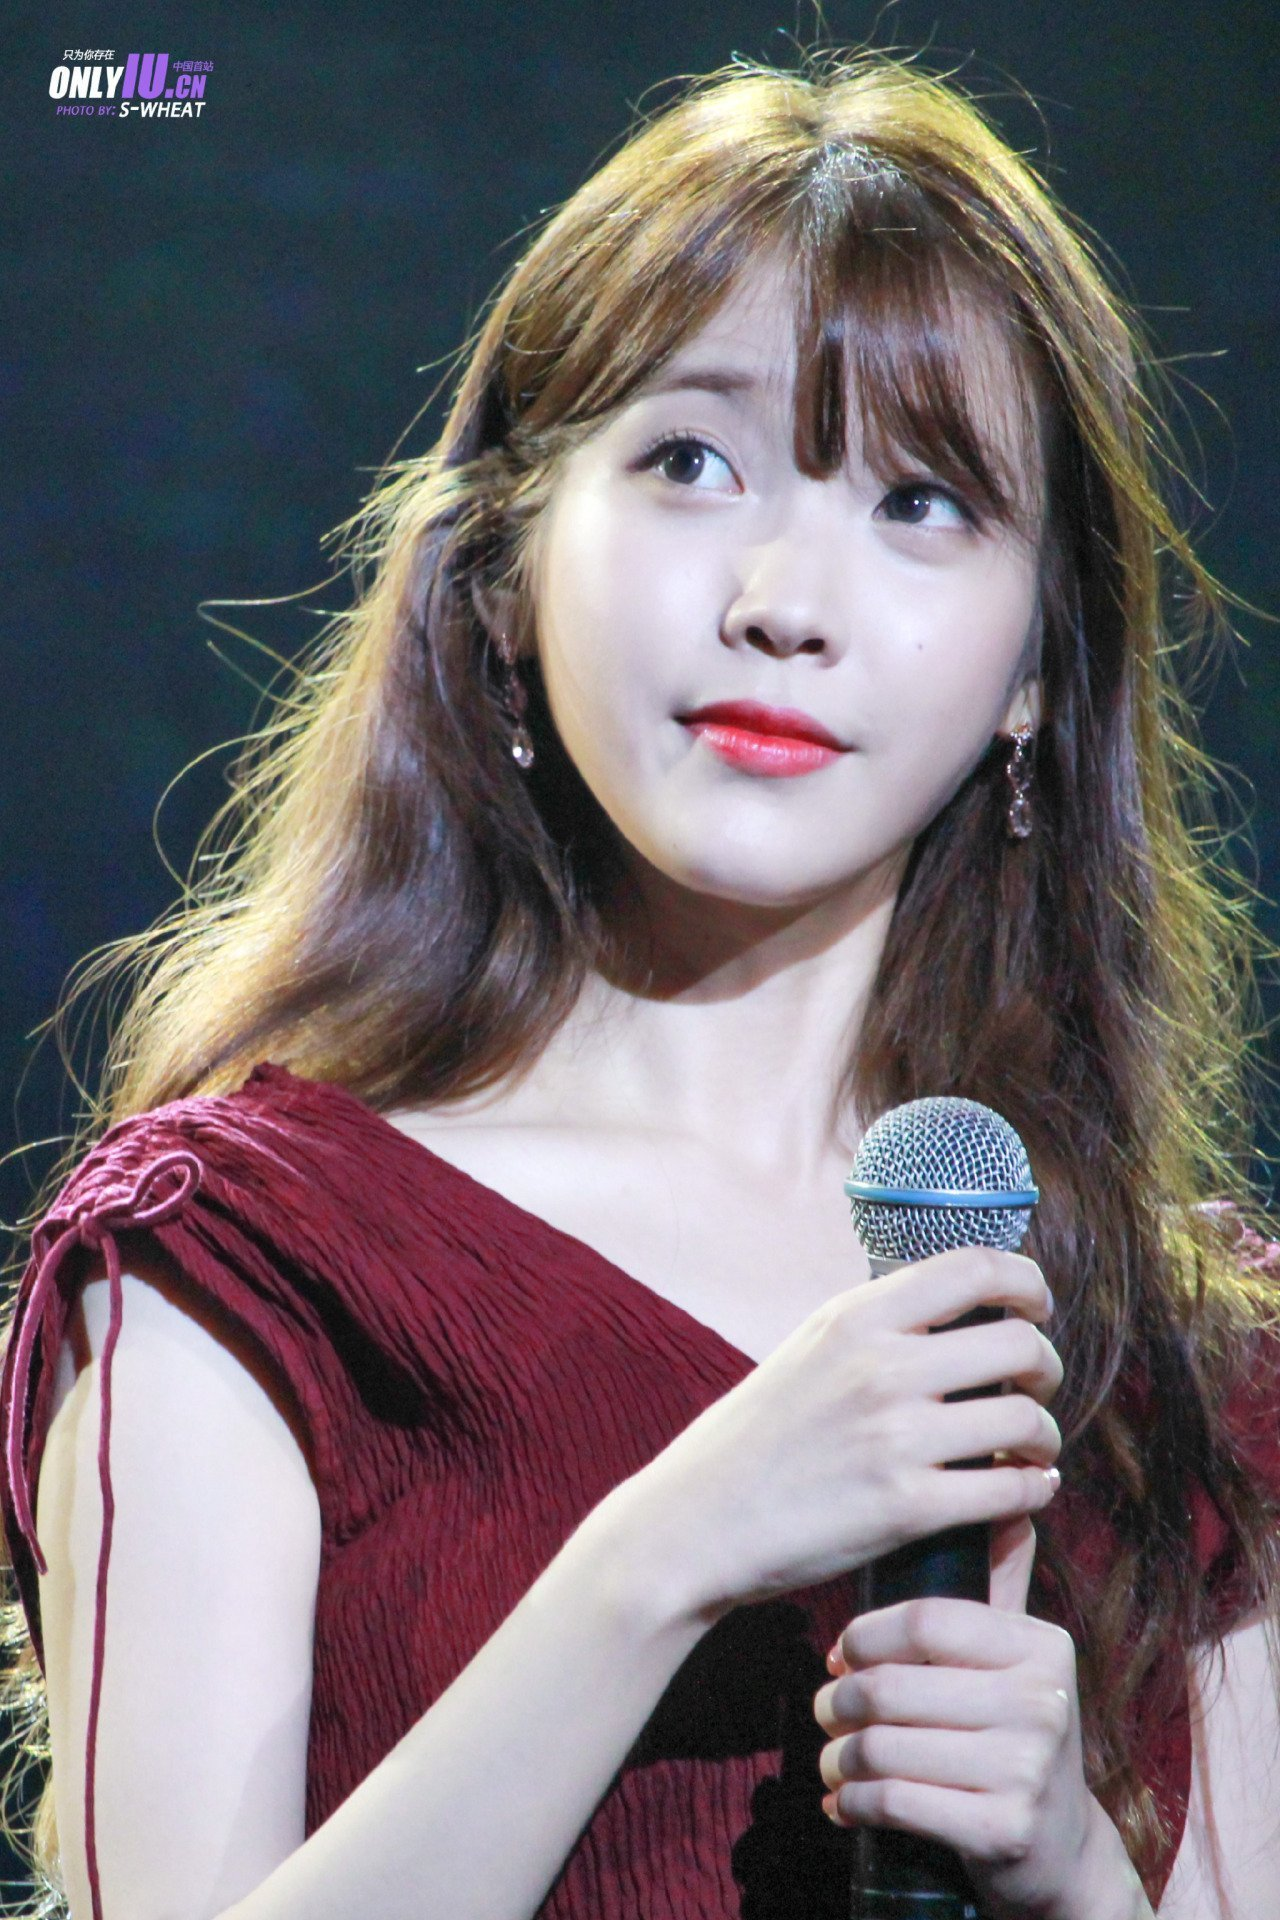 The Best 8 Times Iu Changed Her Hairstyle Completely Koreaboo Pictures